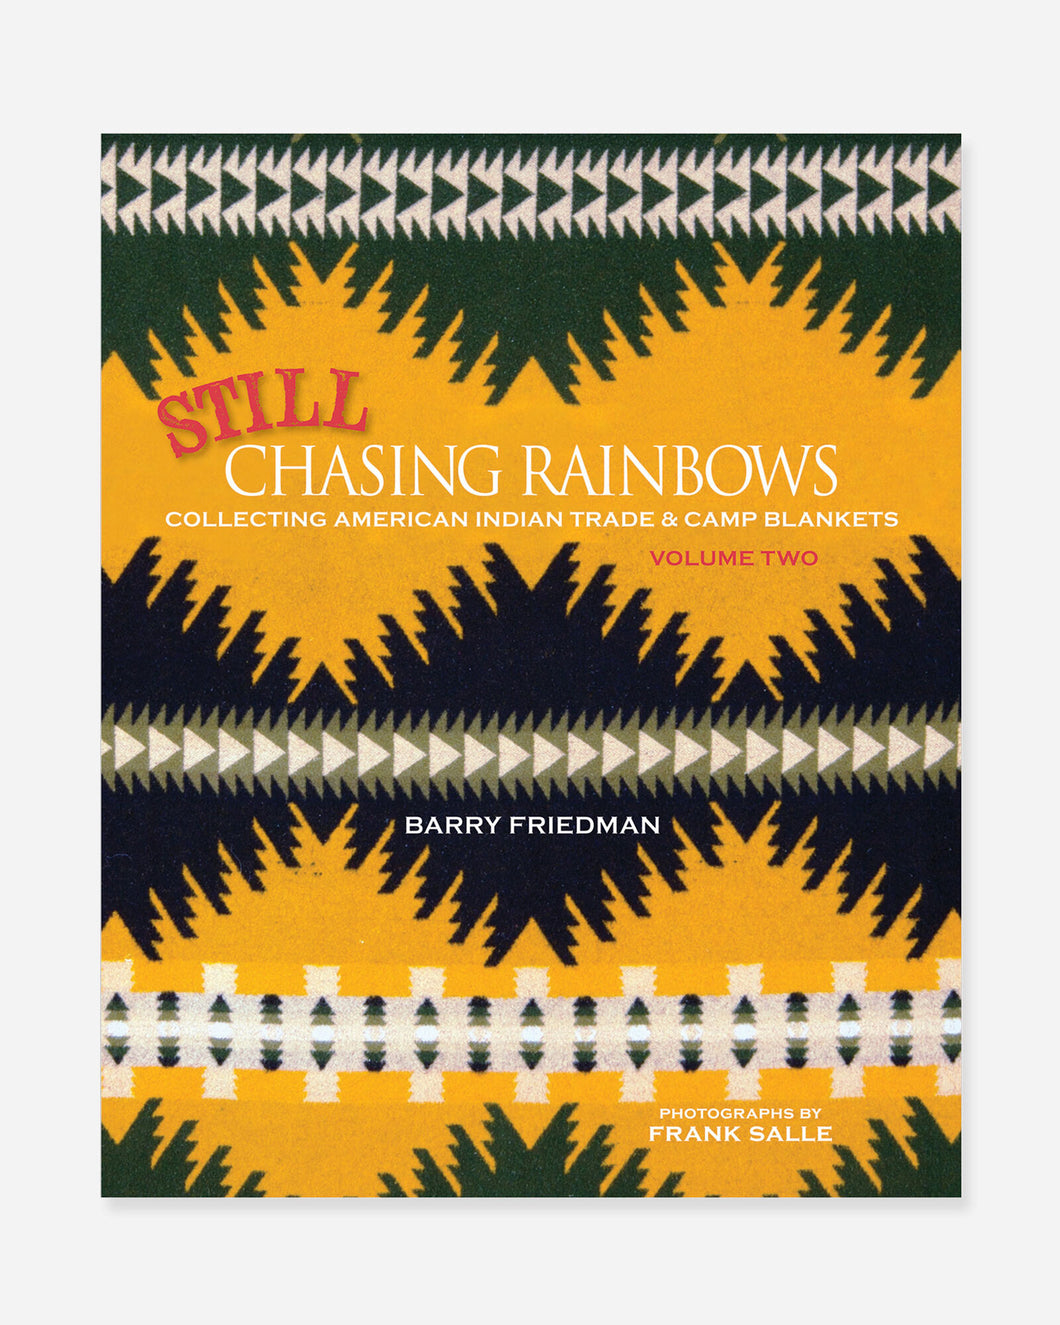 Pendleton woolen mills still chasing rainbows barry friedman native american trade blankets collecting volume 2 book